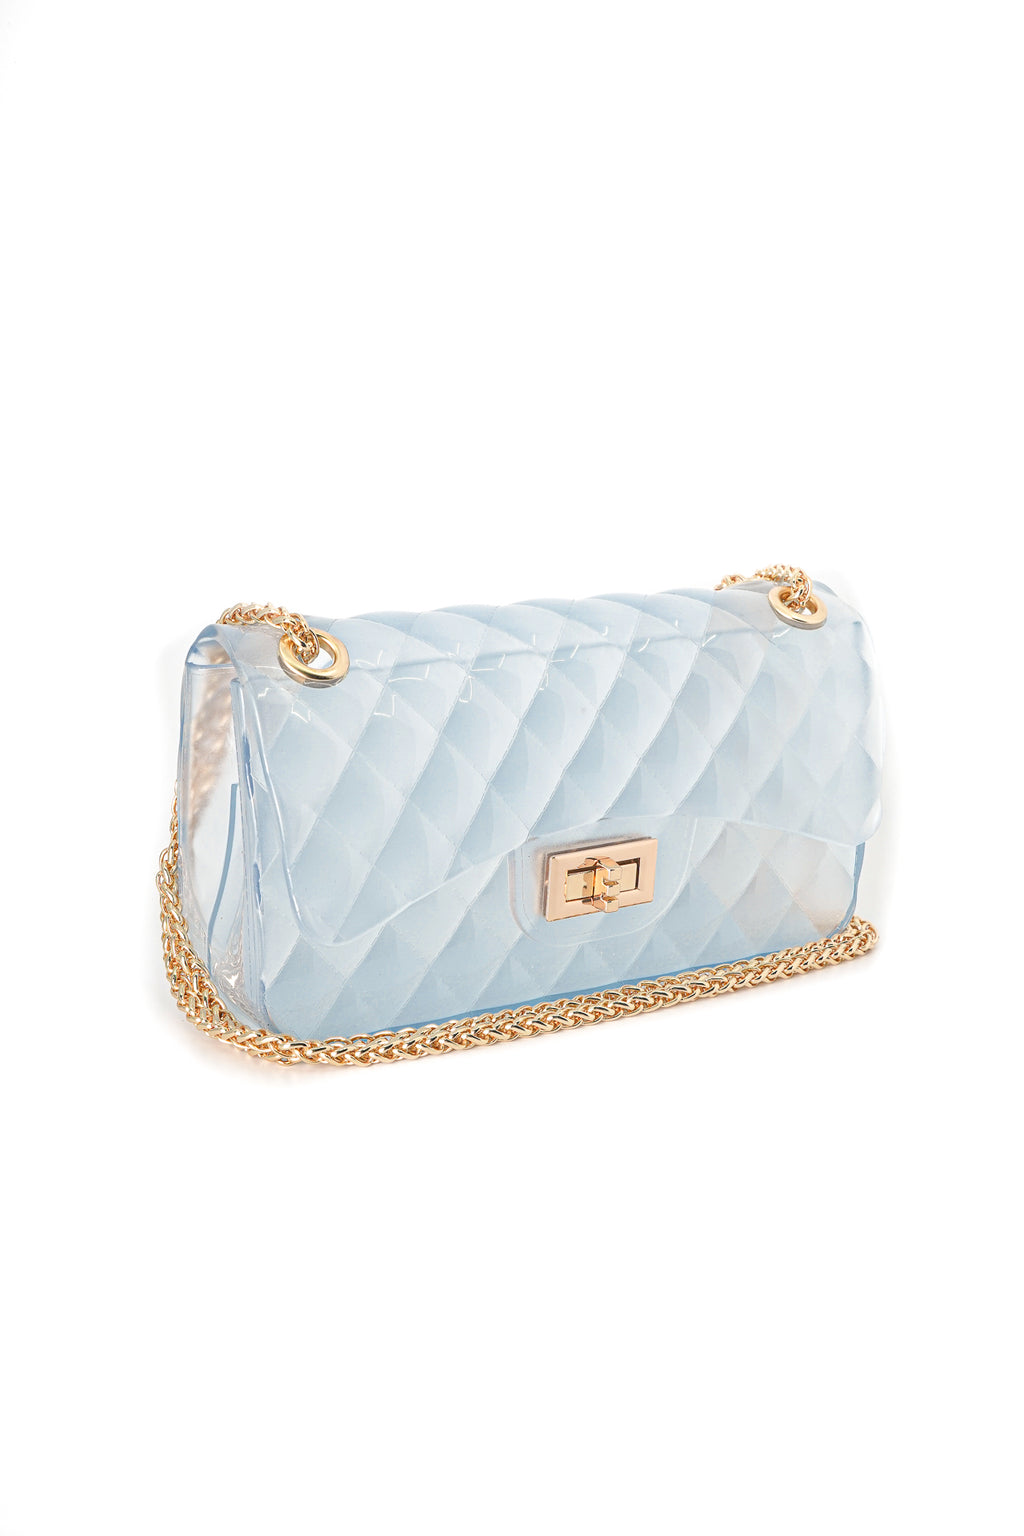 Large Rectangle Quilted Jelly Crossbody Bag with Gold Chain Strap